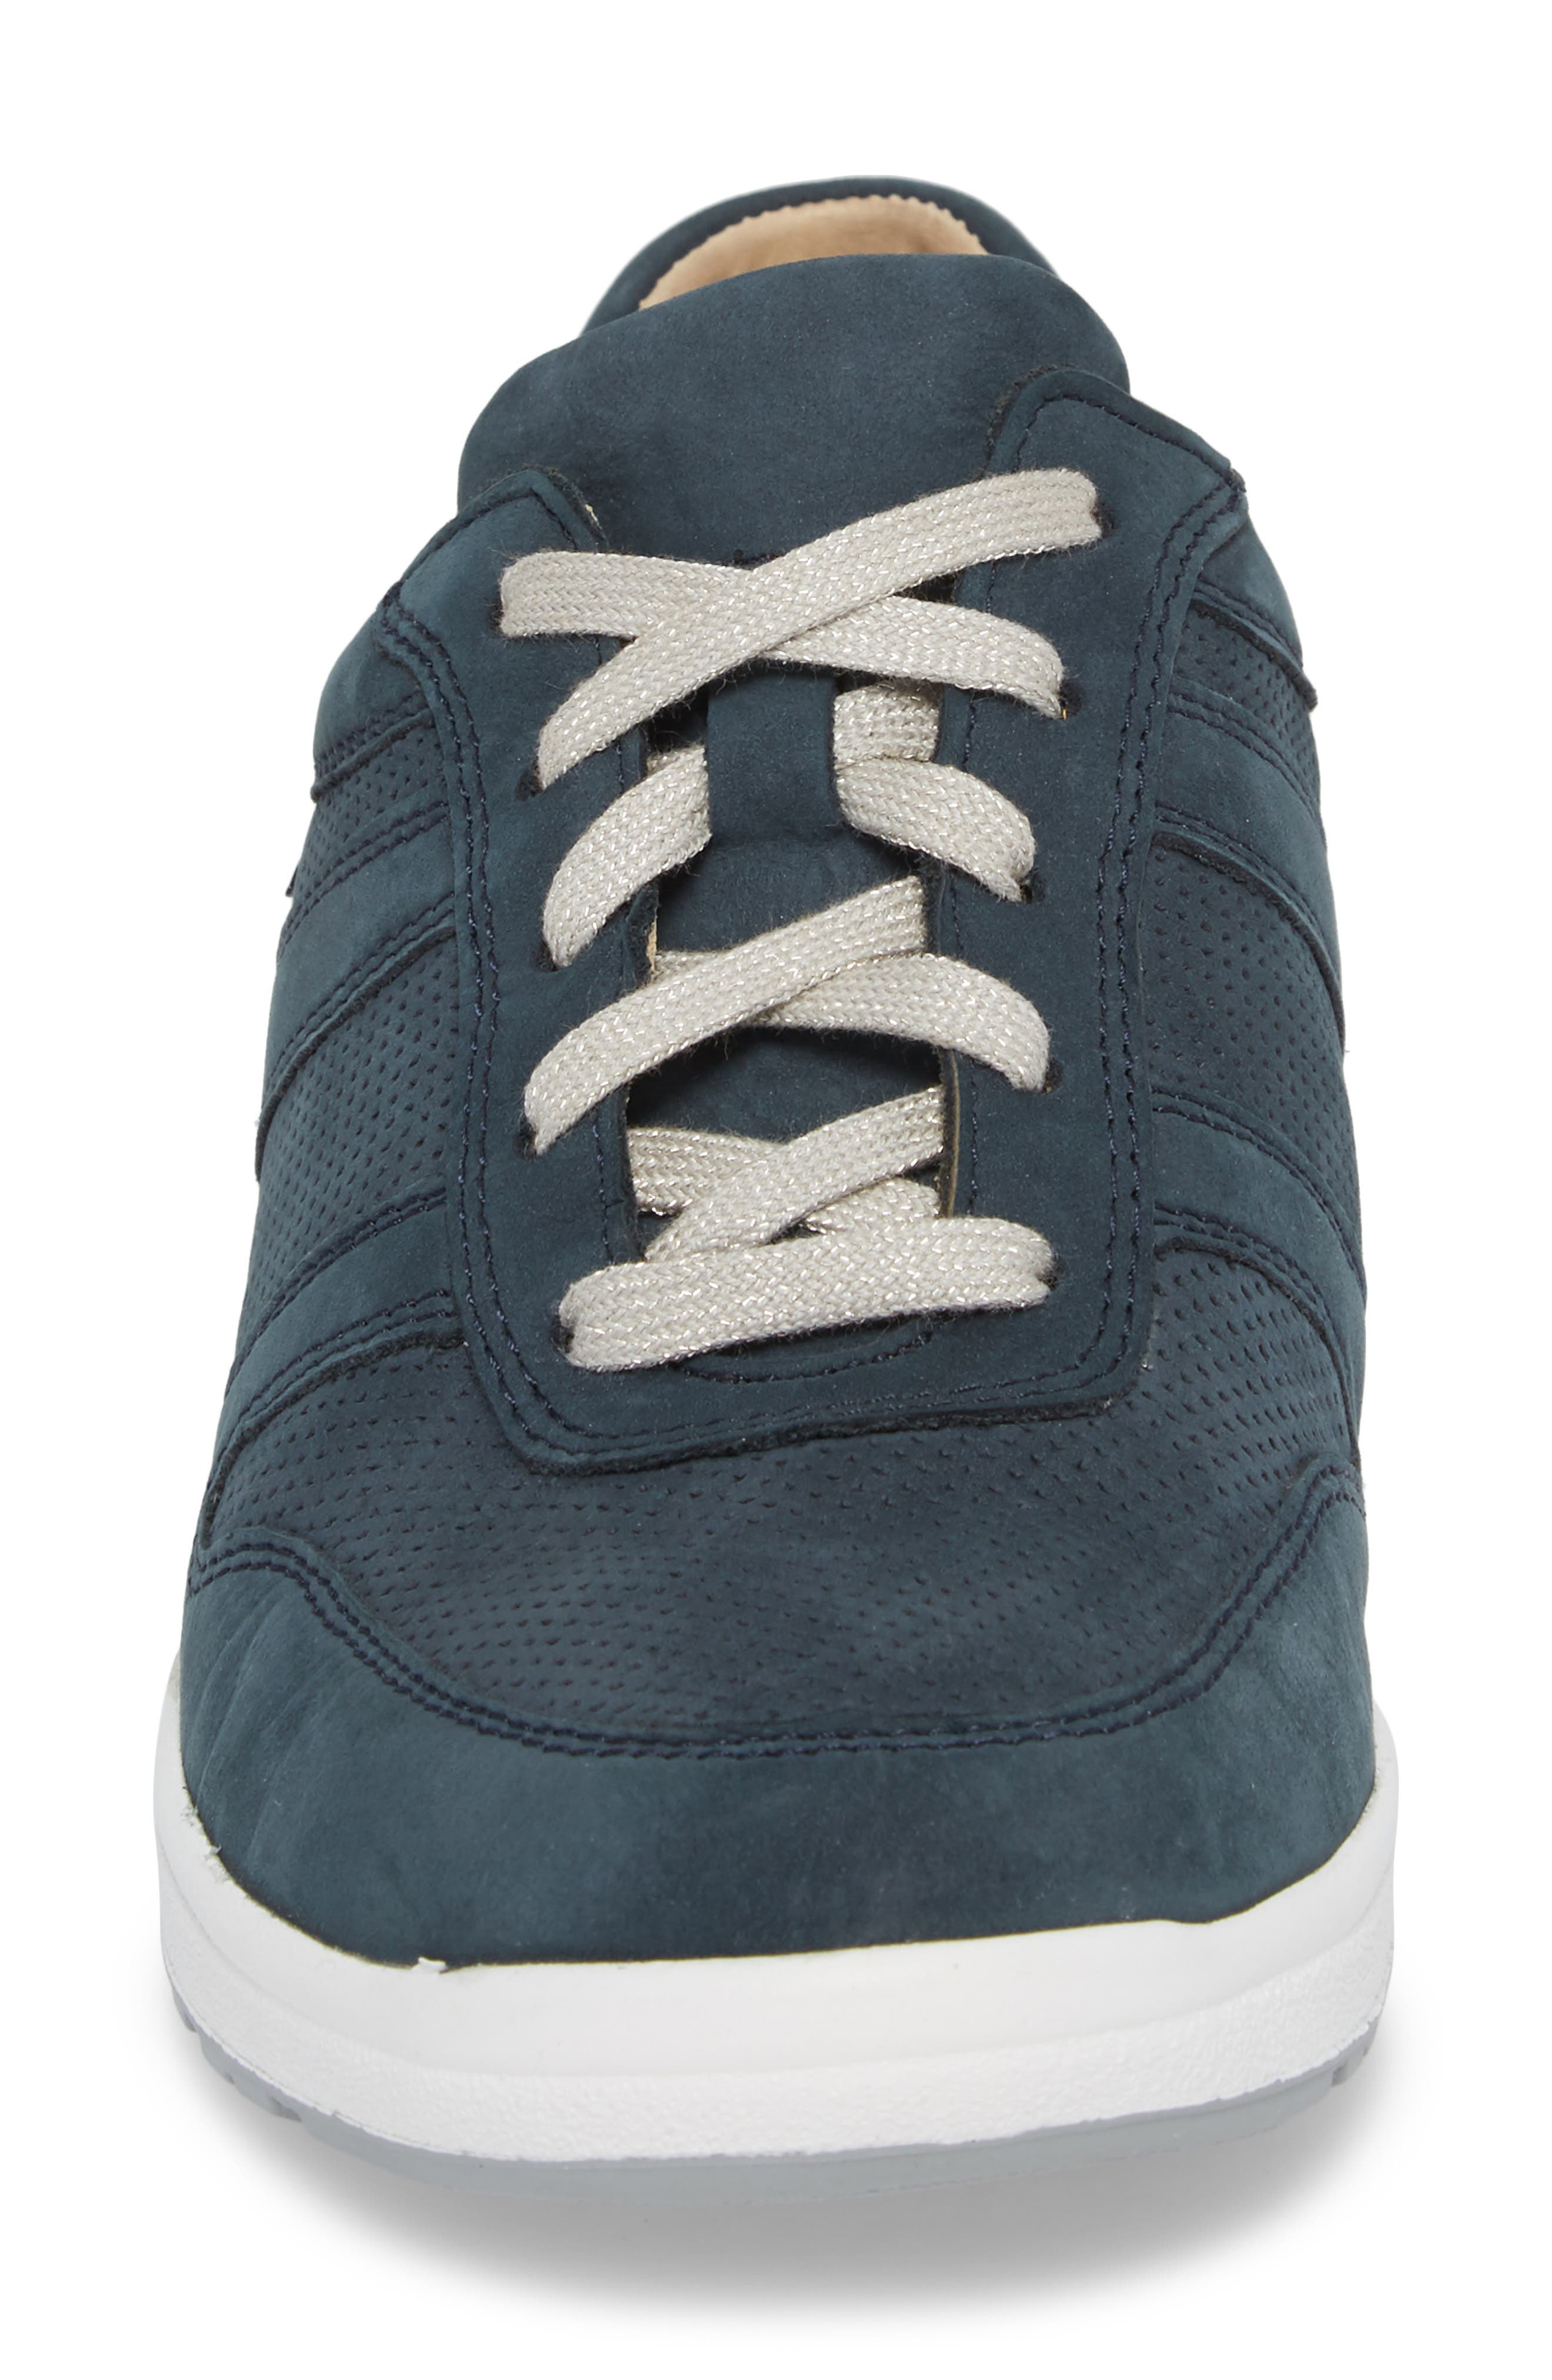 MEPHISTO, Rebecca Perforated Sneaker, Alternate thumbnail 4, color, NAVY